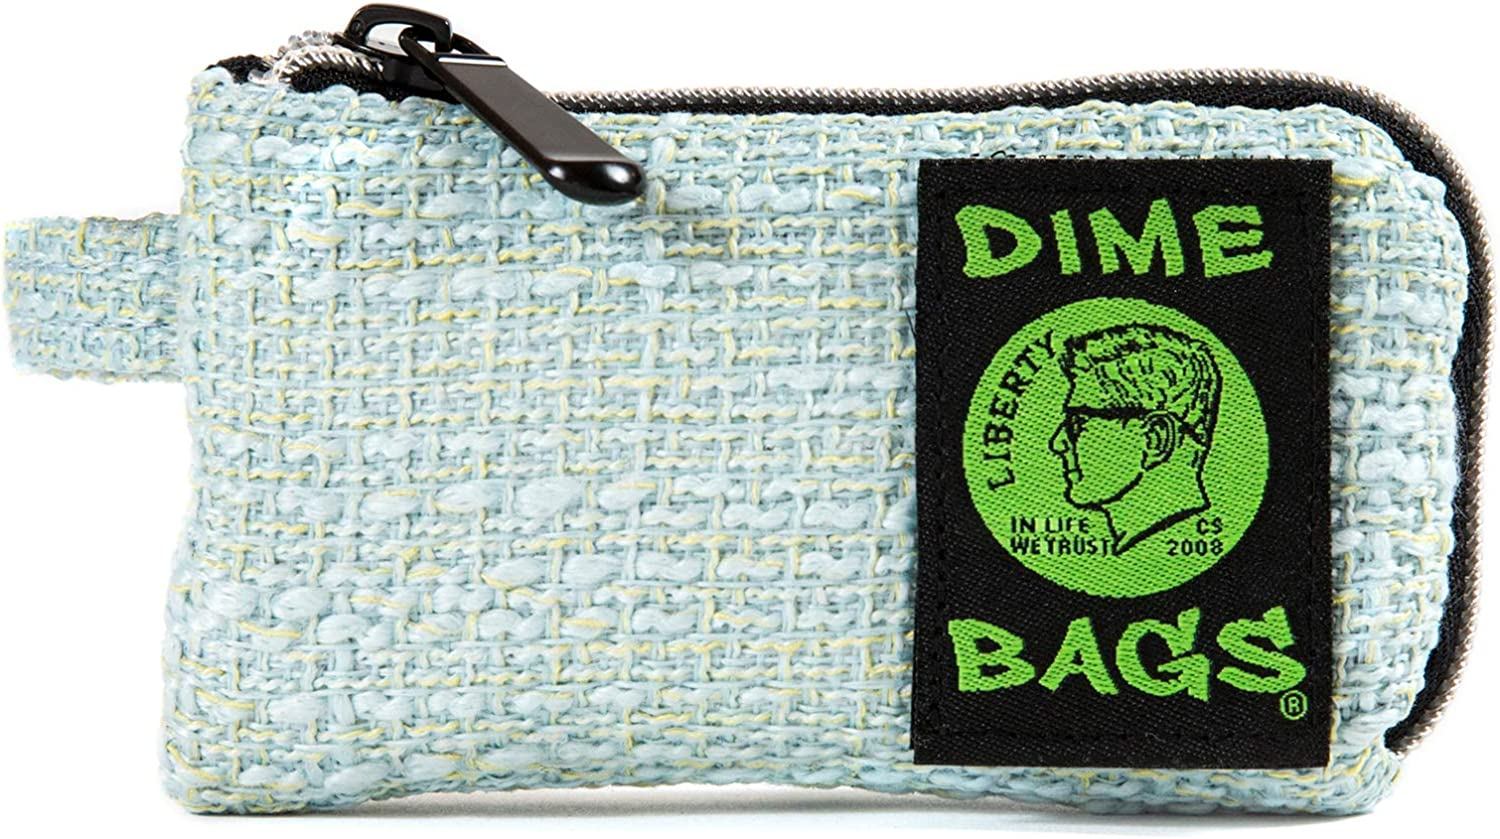 Dime Bags Padded Pouch with Soft Padded Interior   Protective Hemp Pouch for Glass with Interior Smell Proof Pocket (Blue, 5-Inch)